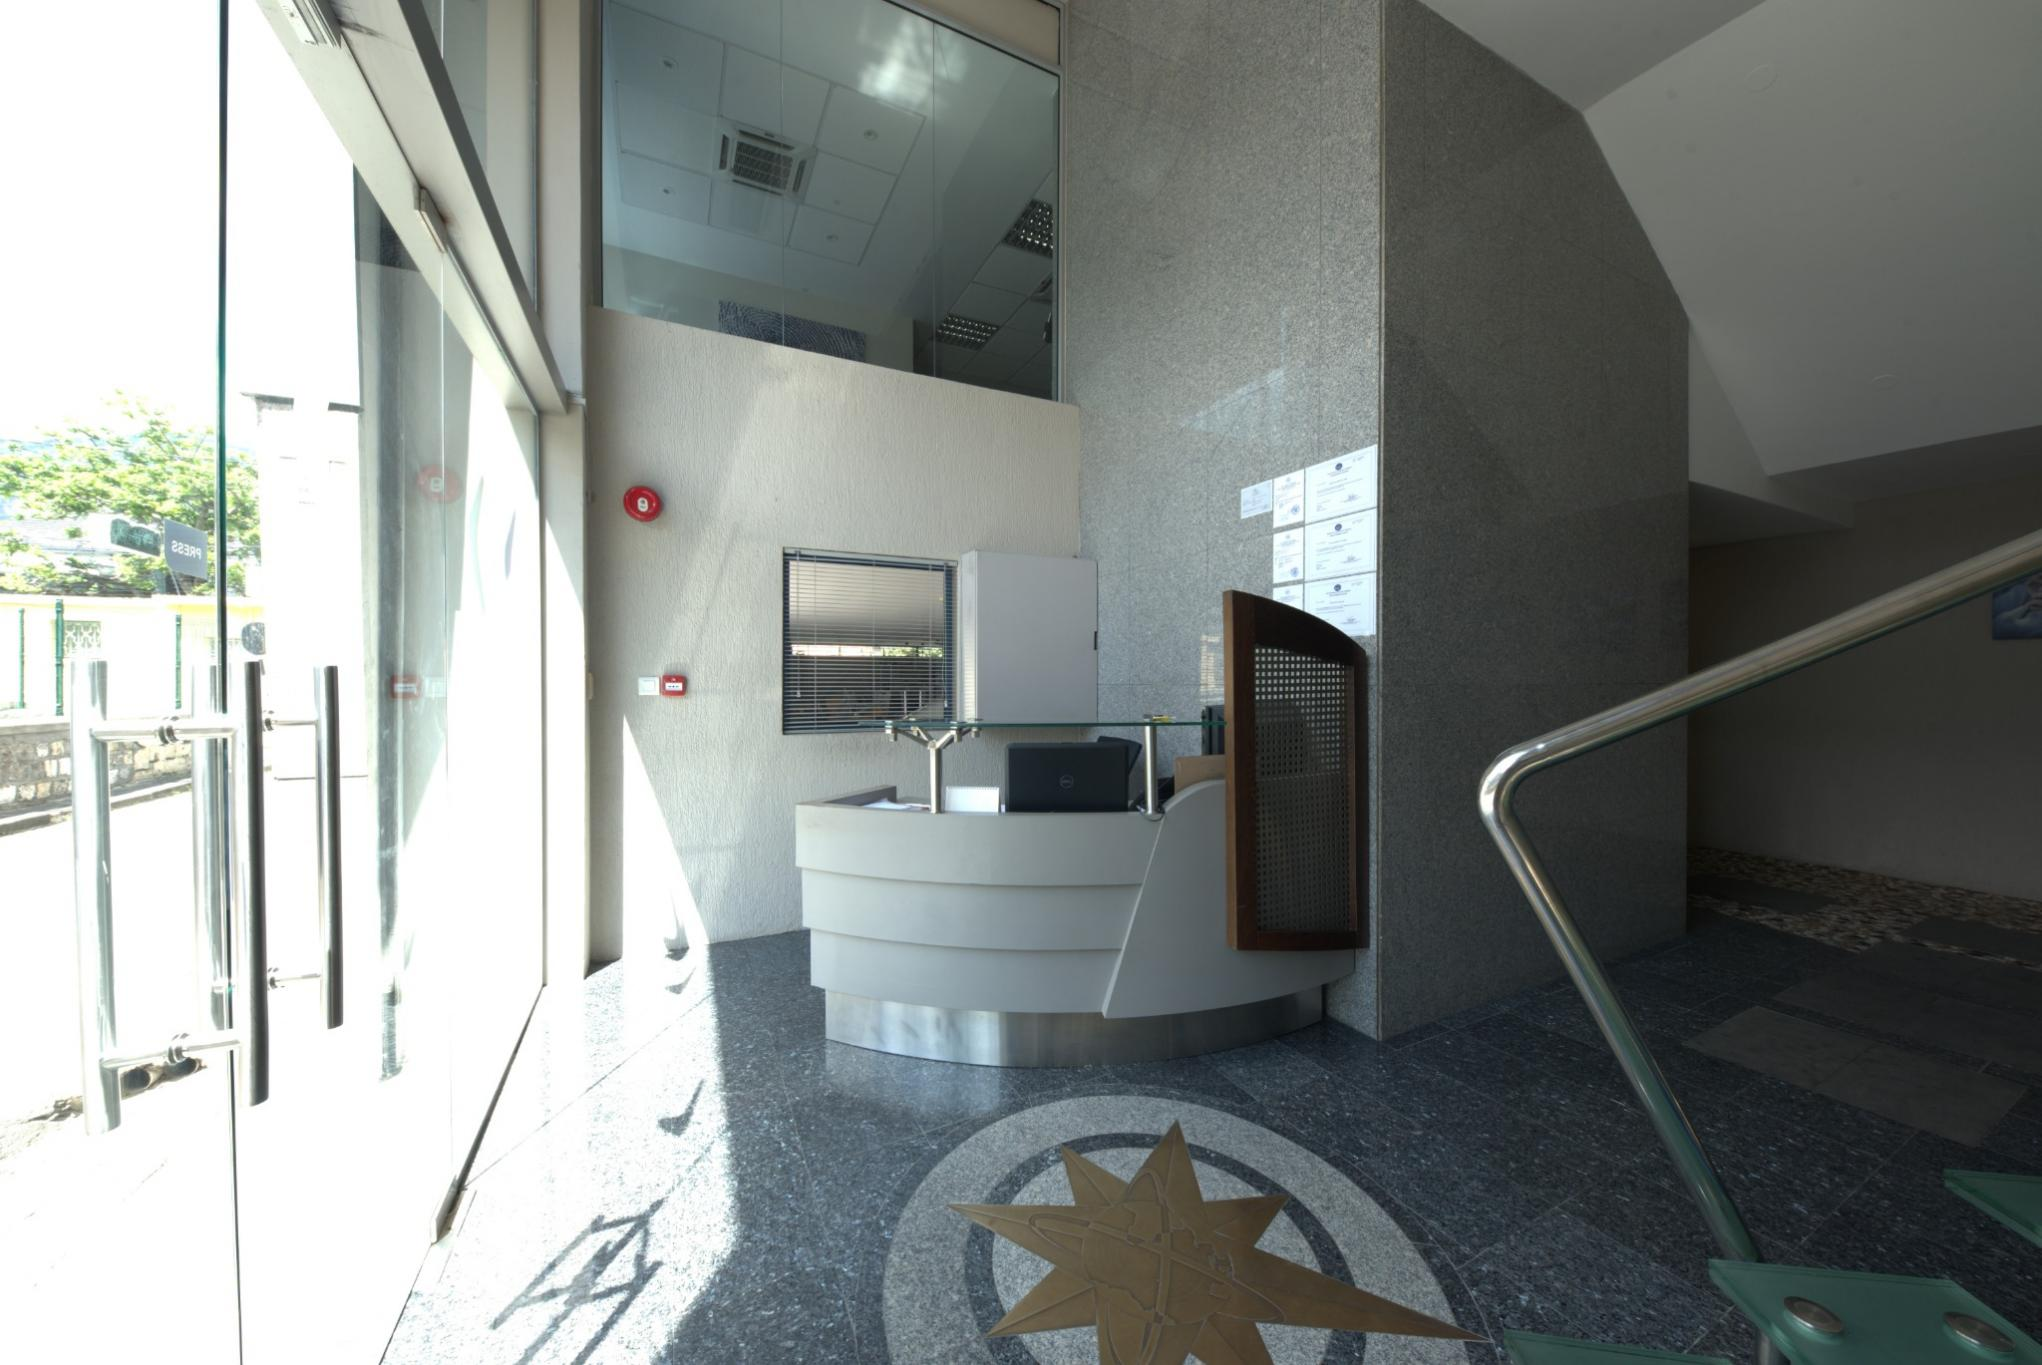 To rent – 5 Air-conditioned office spaces with elevator in Port-Louis.